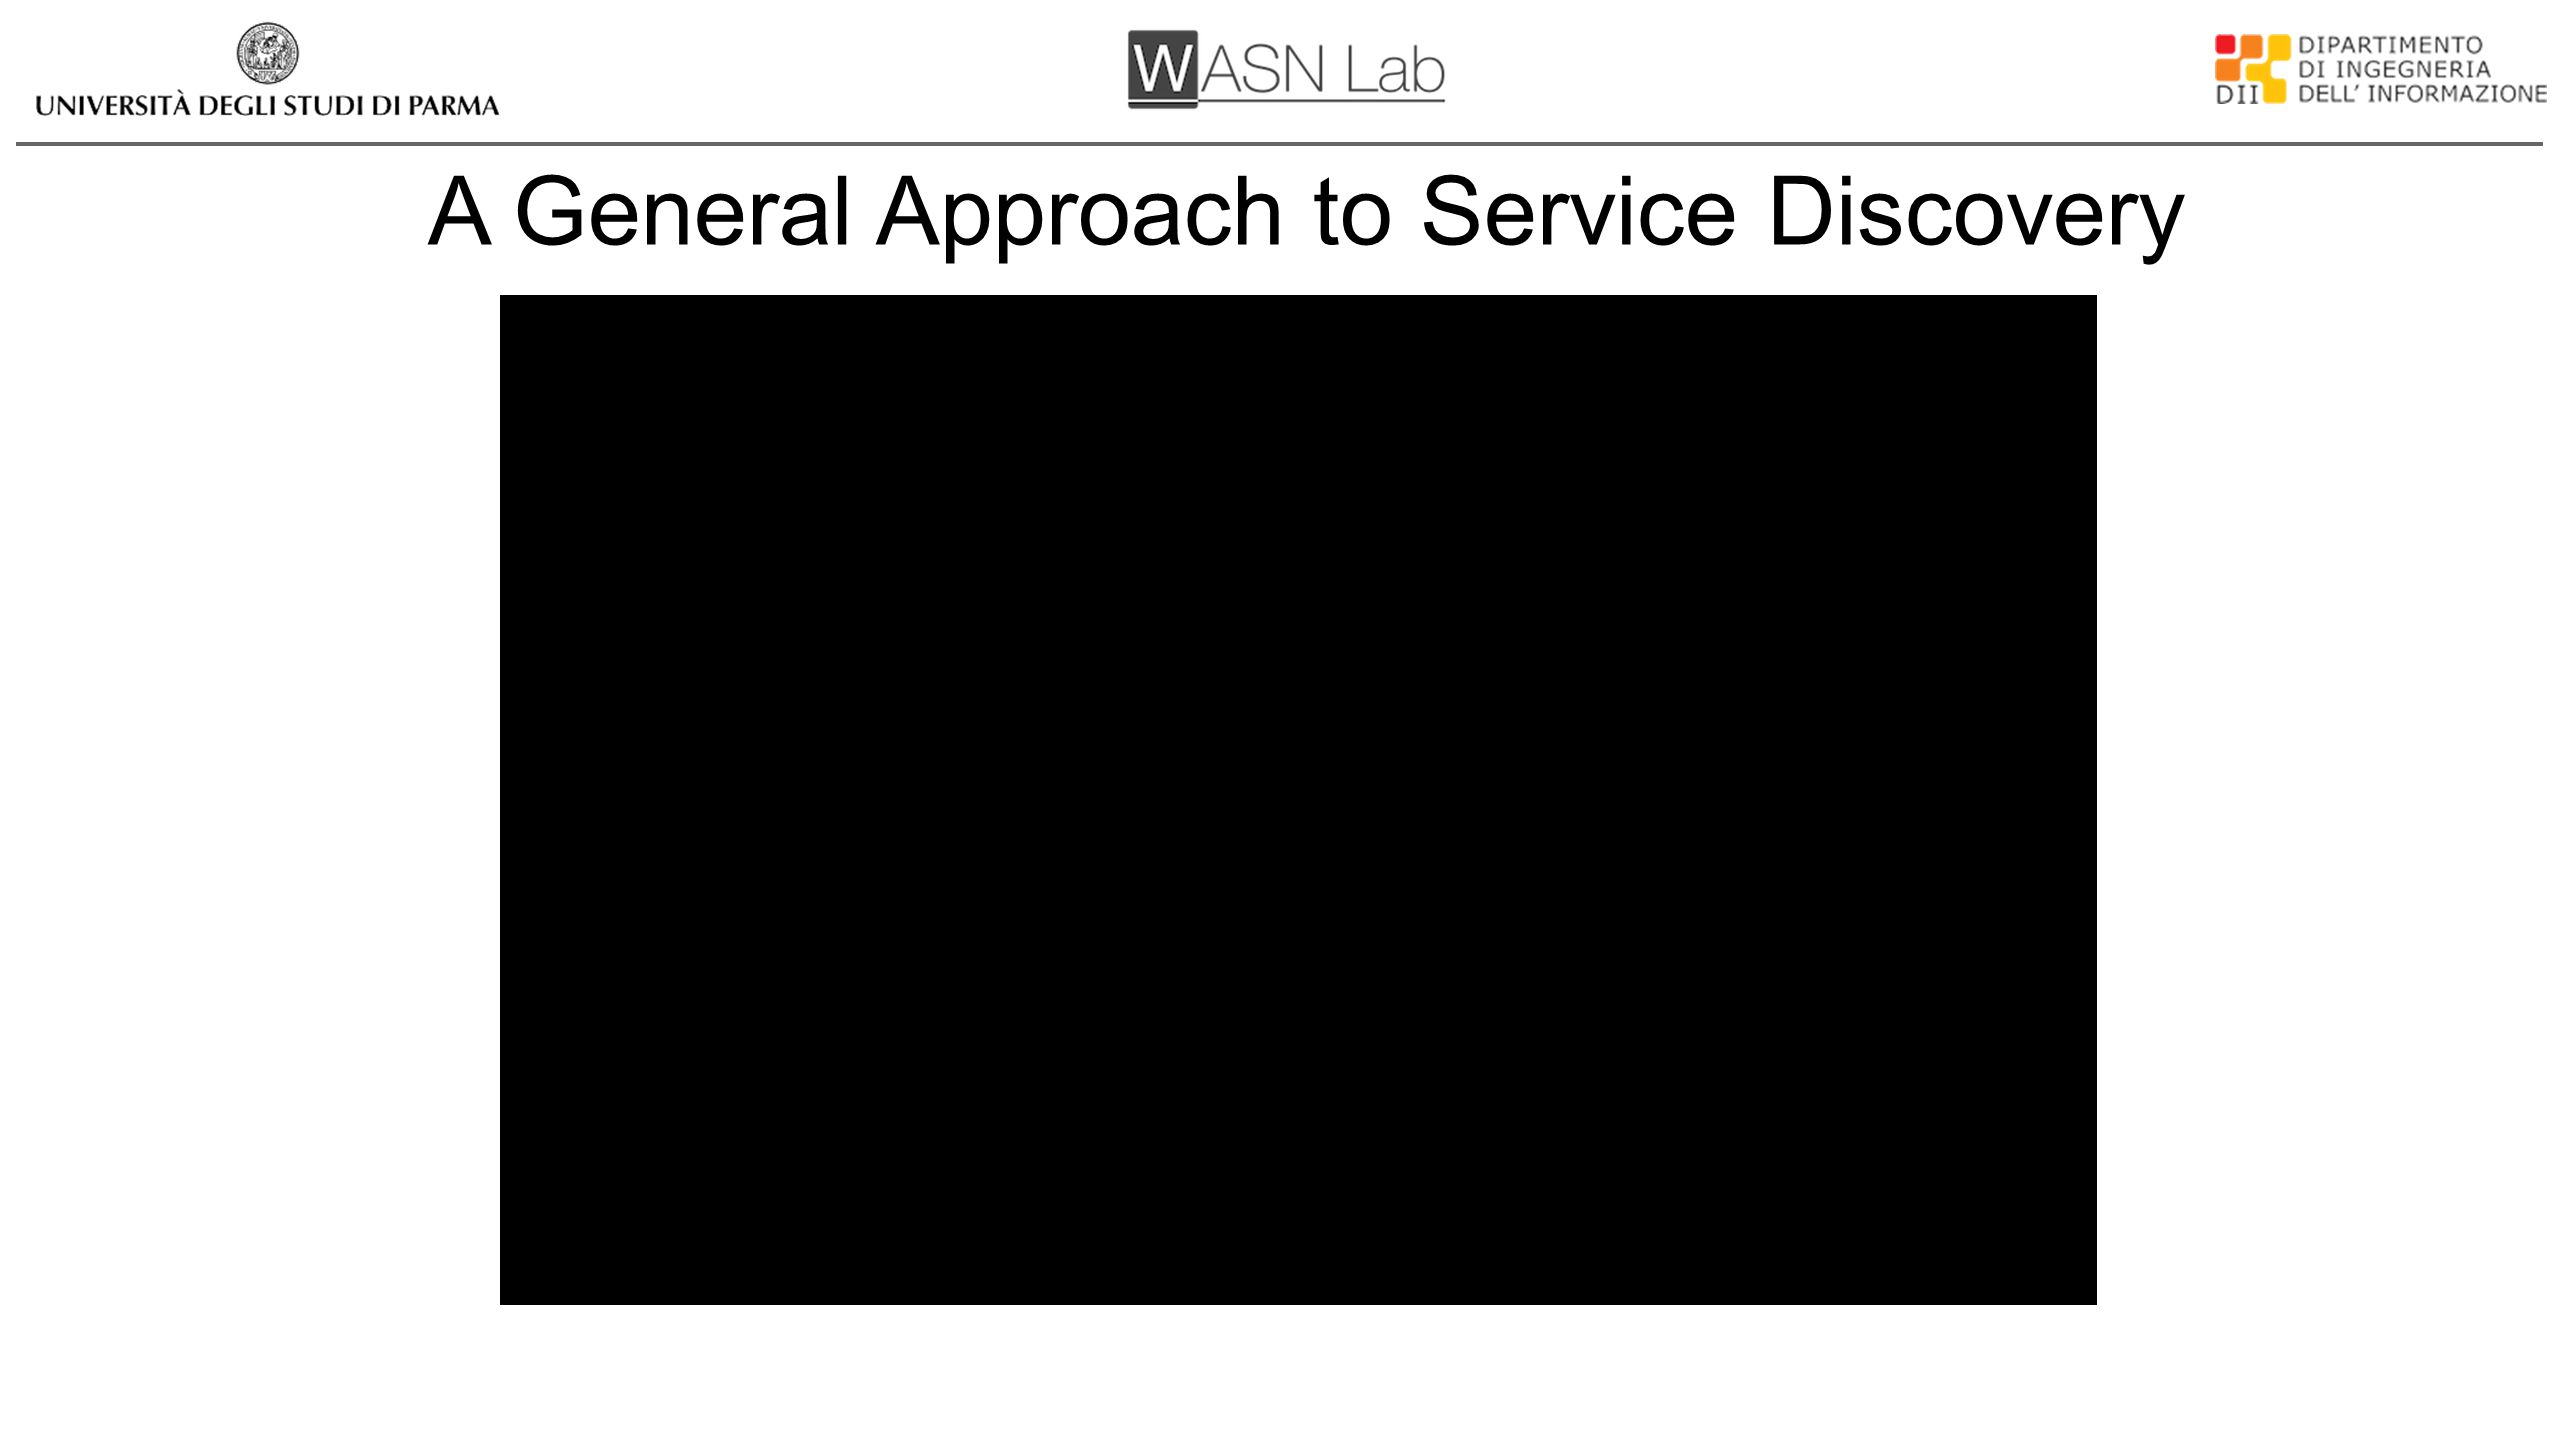 A General Approach to Service Discovery